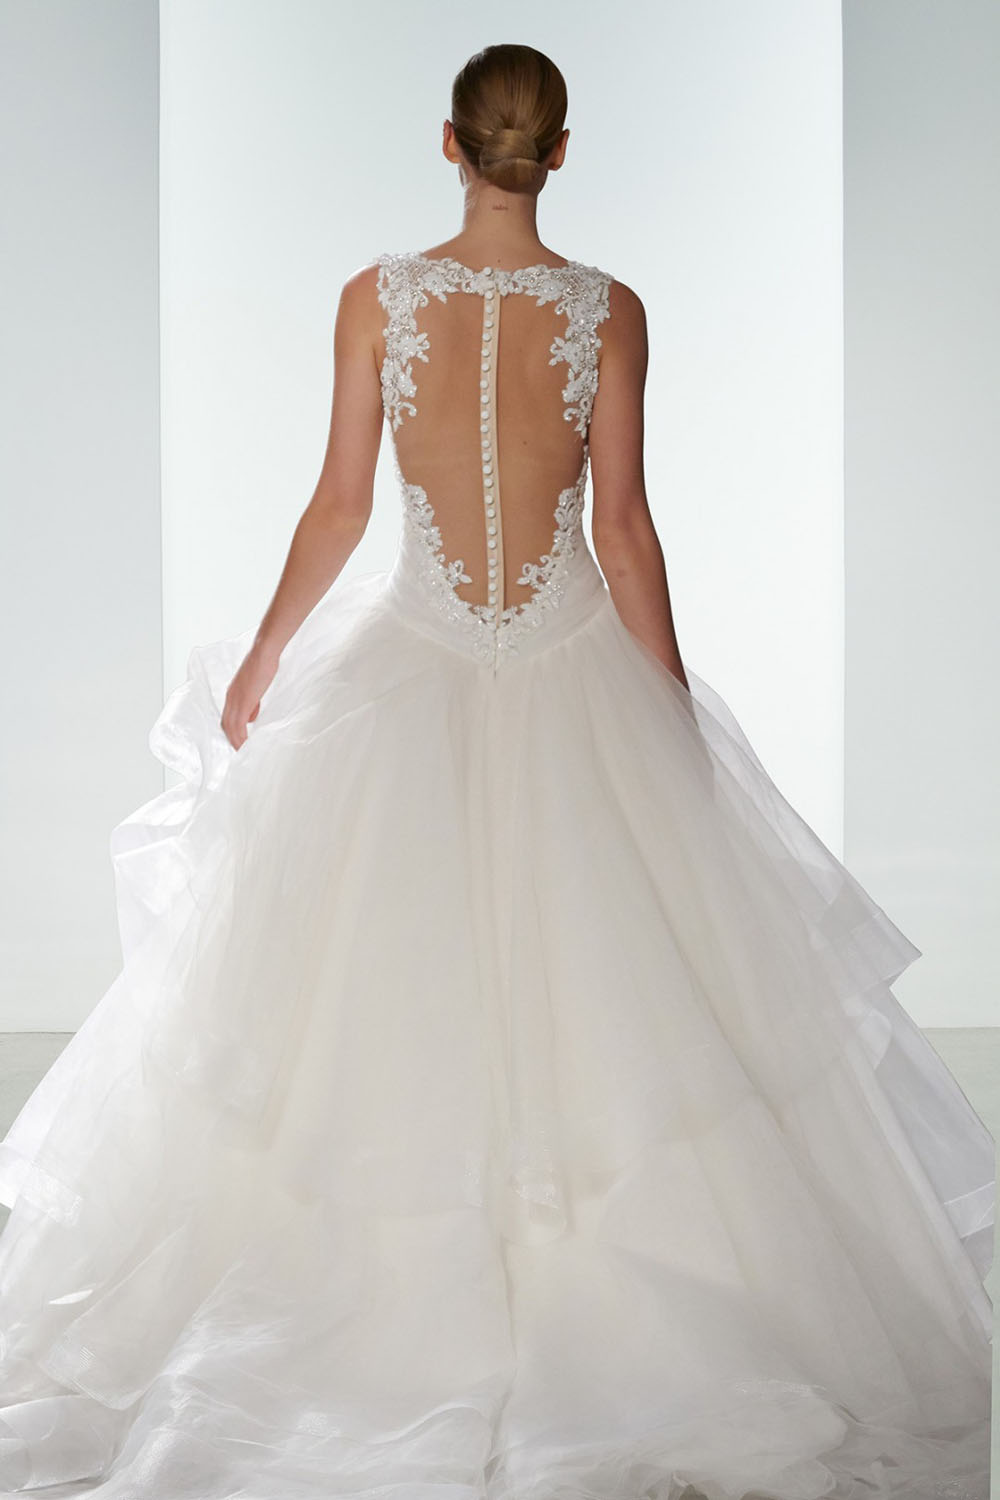 Season: Spring 2016    Gown name: Polina    Description: A sheer back ball gown with floral hand beaded bodice and layered tulle skirt.